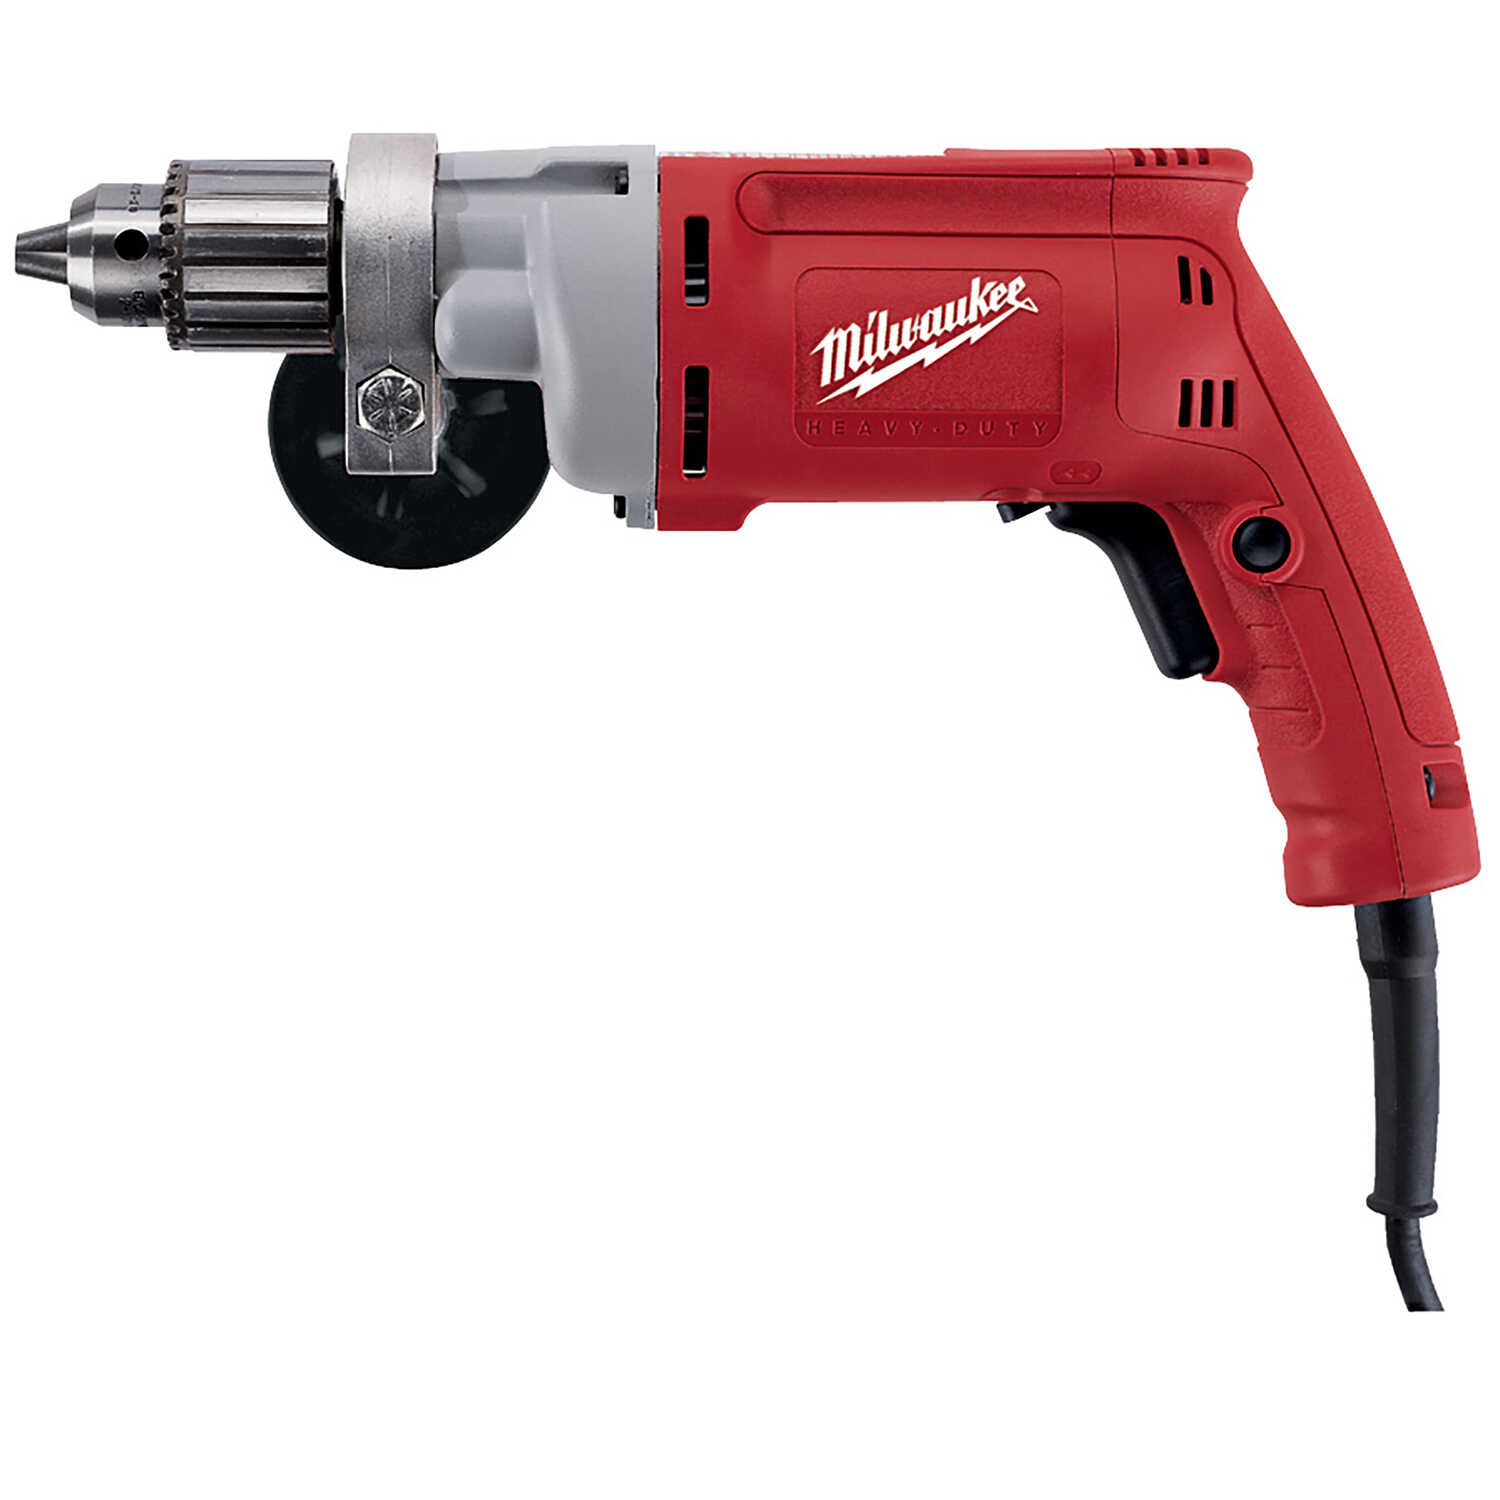 Milwaukee  MAGNUM  1/2 in. Keyed  Corded Drill  Bare Tool  8 amps 850 rpm